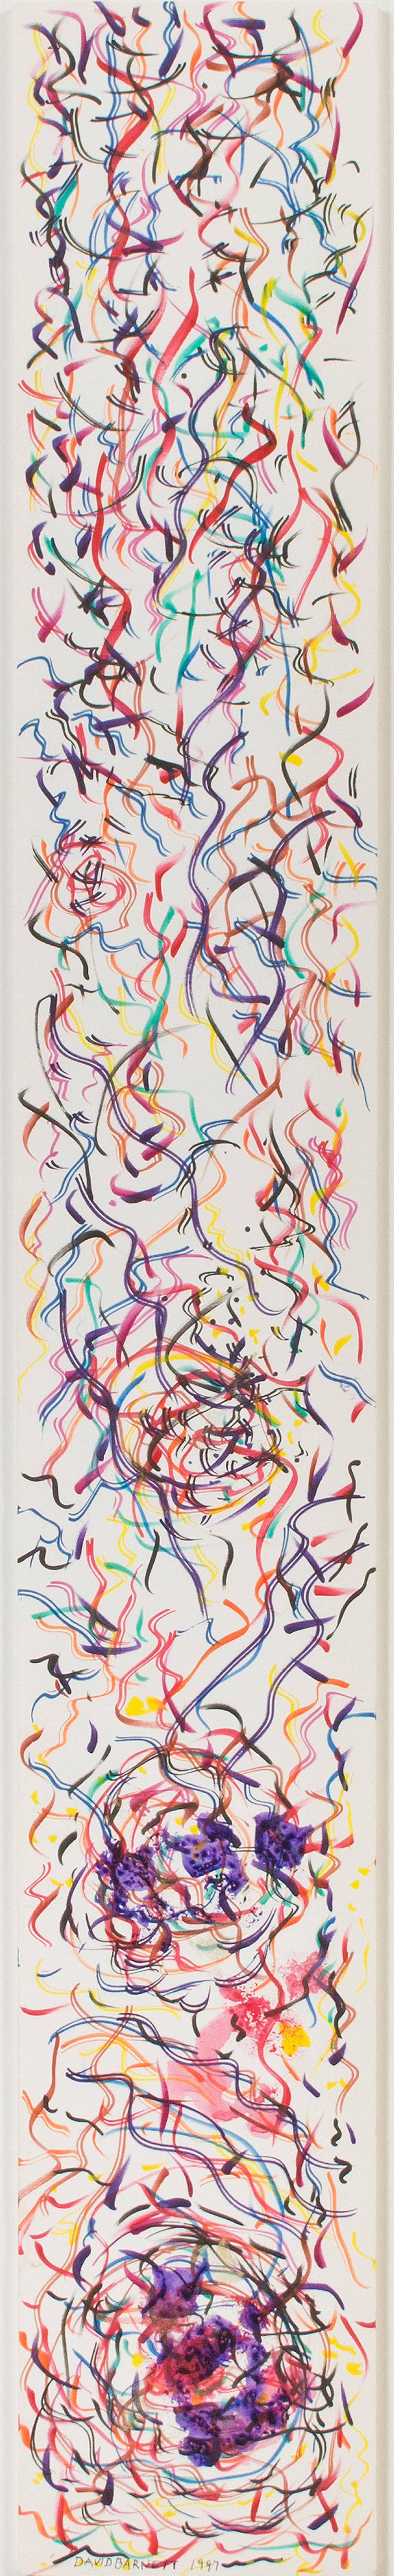 """""""Morph Dog Frenzy,"""" Ink, Watercolor, and Acrylic signed by David Barnett"""